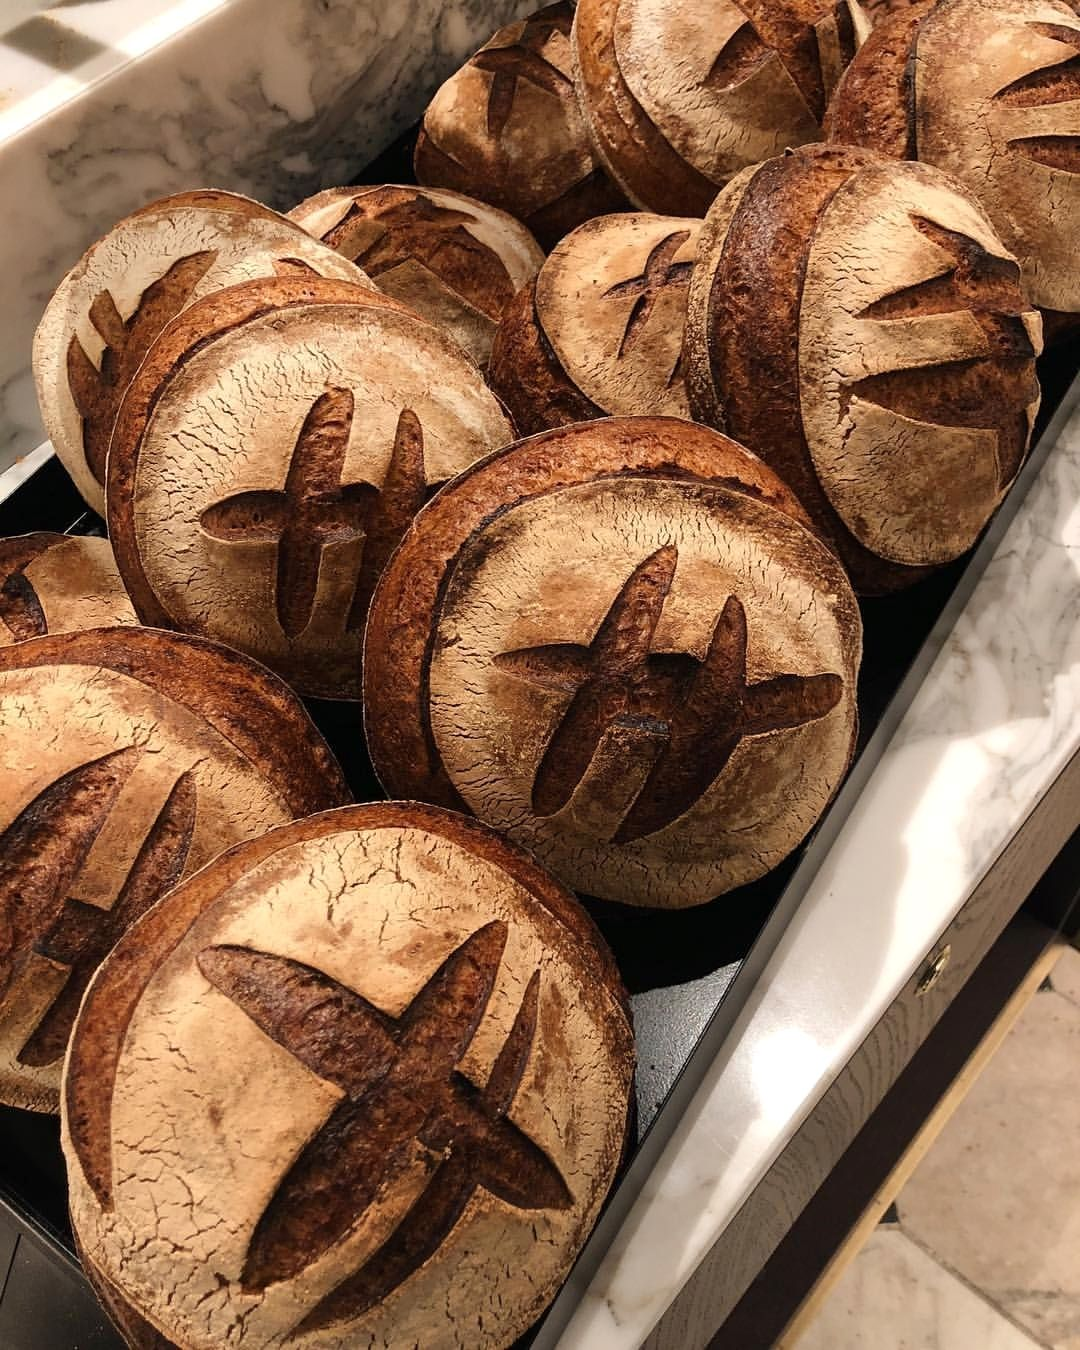 The New Signature Harrods Sourdough In The Bake Hall Sunday Sorted Harrodsfood Thetasterevolution Ad Food Homemade Recipes World Recipes